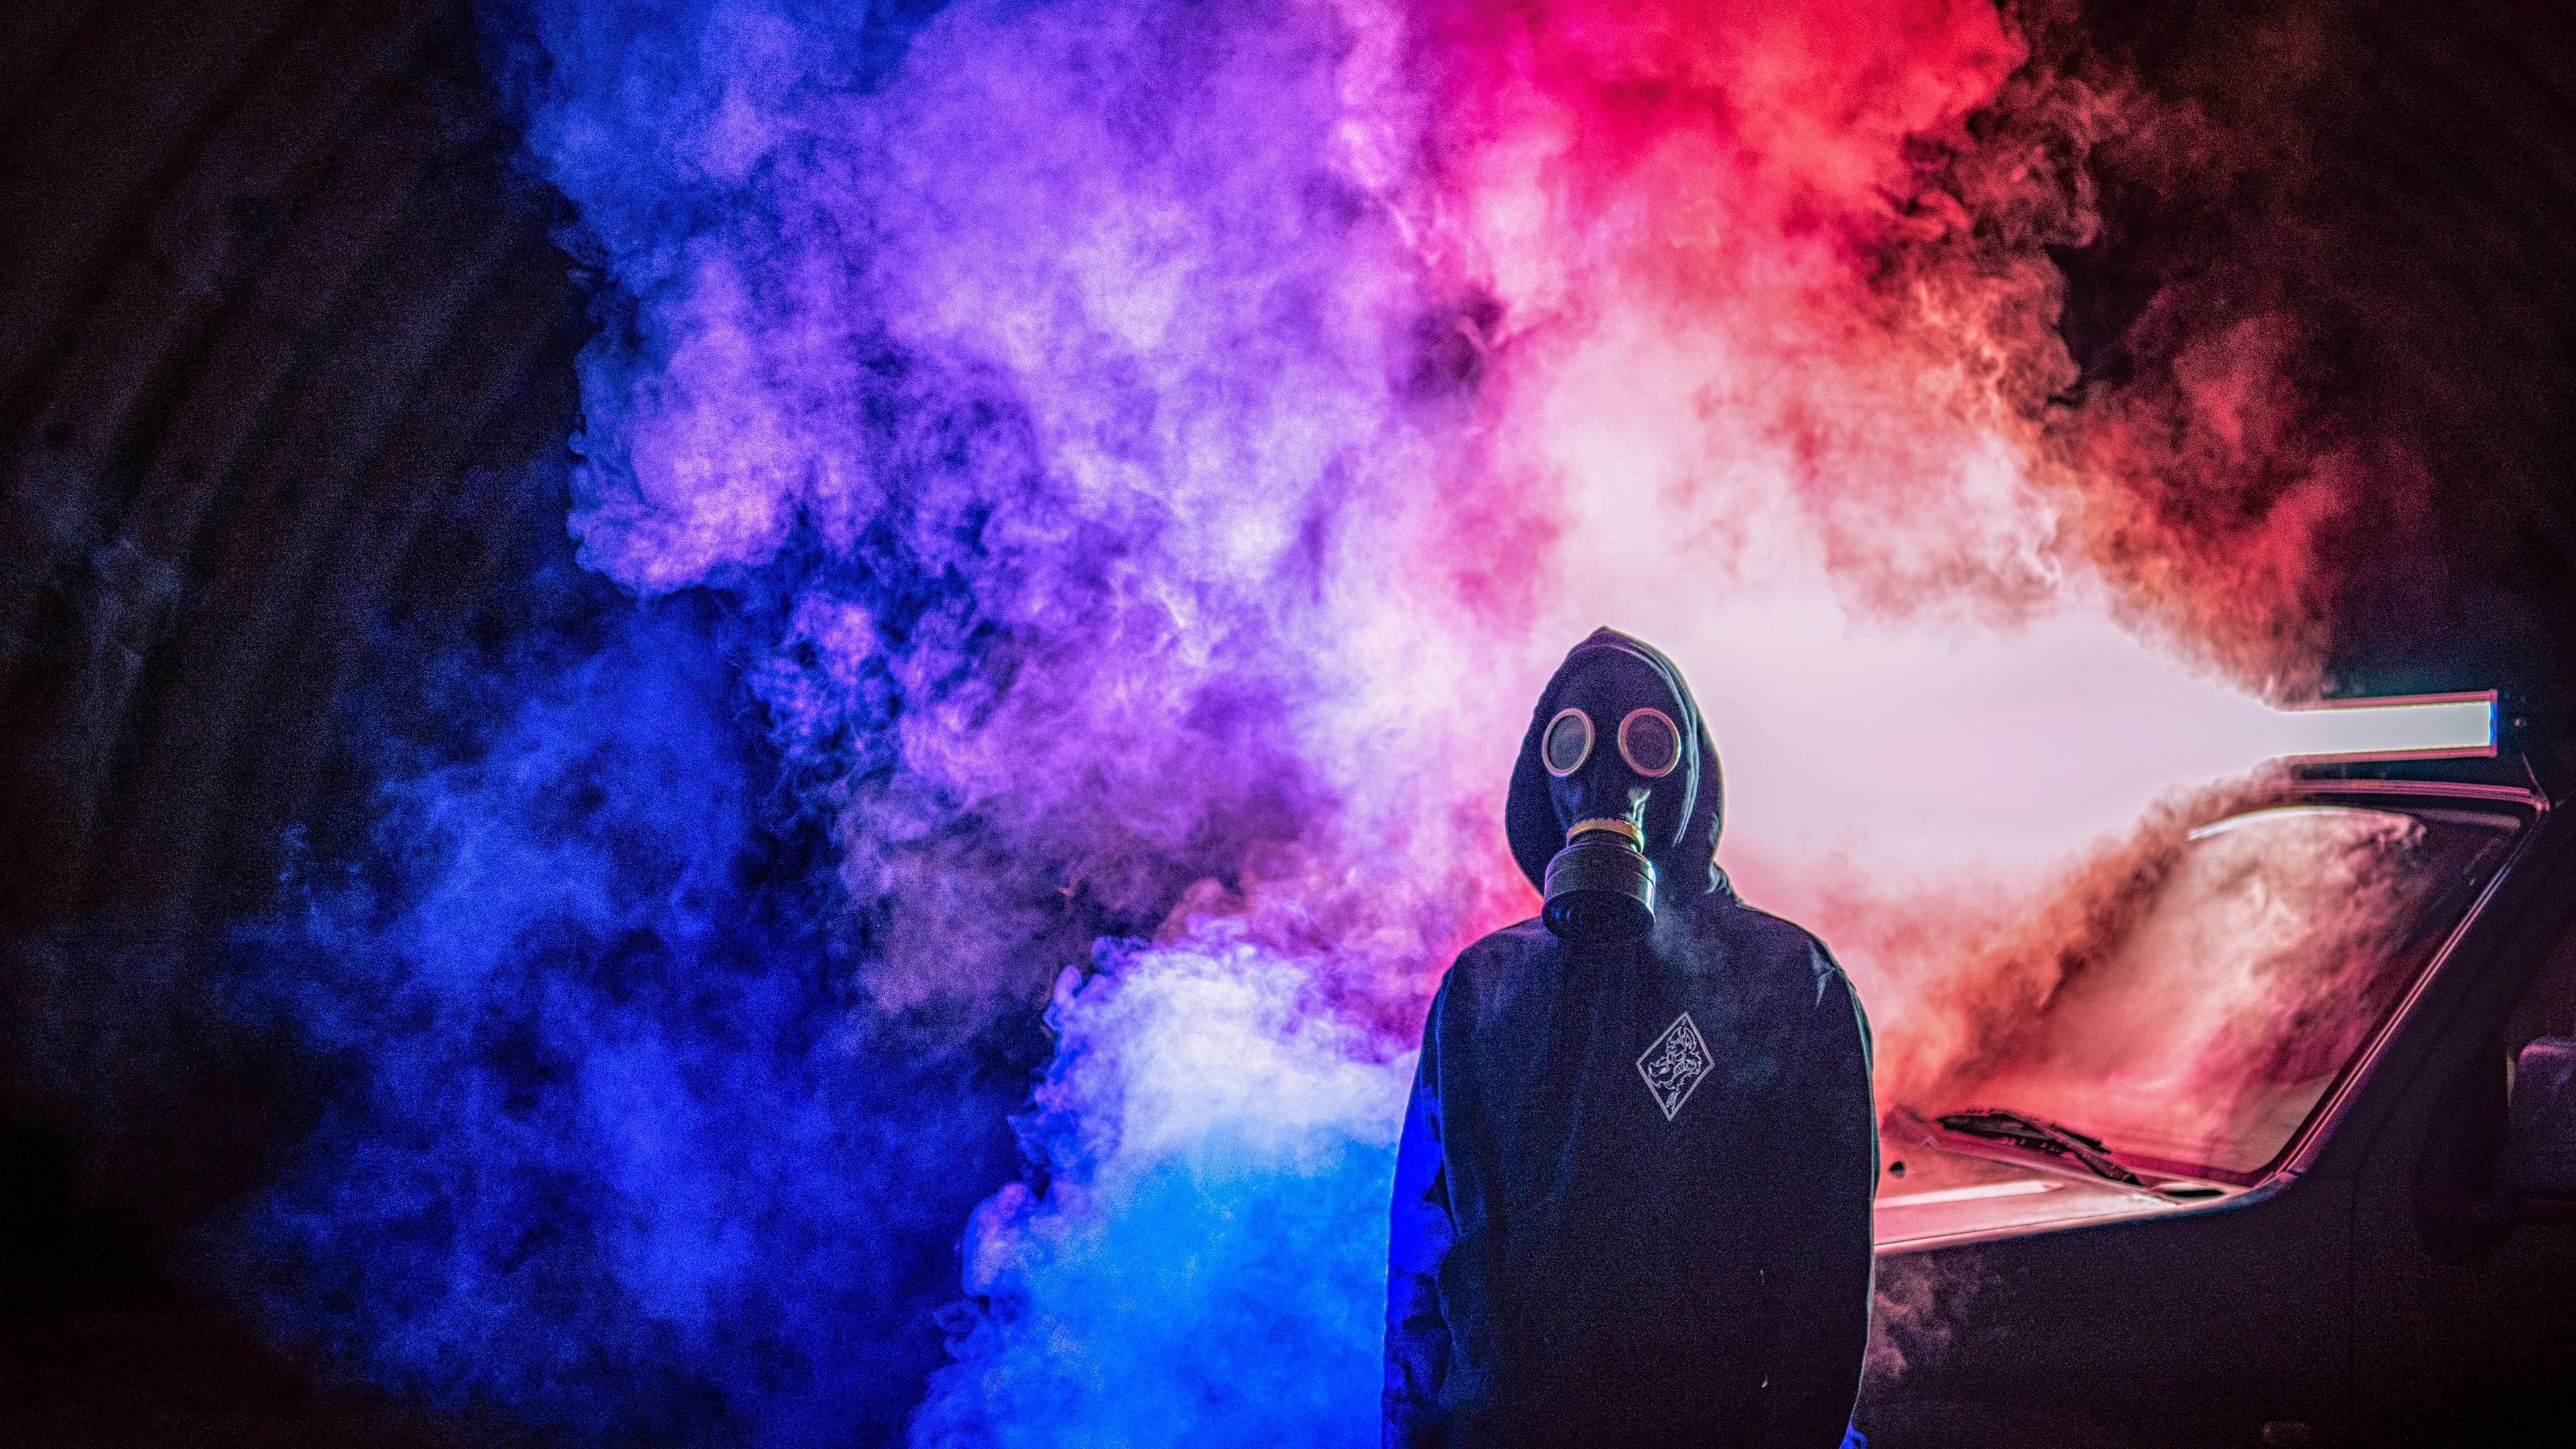 Wallpaper Gas Mask Smoke Man Car 3840x2160 Uhd 4k Picture Image